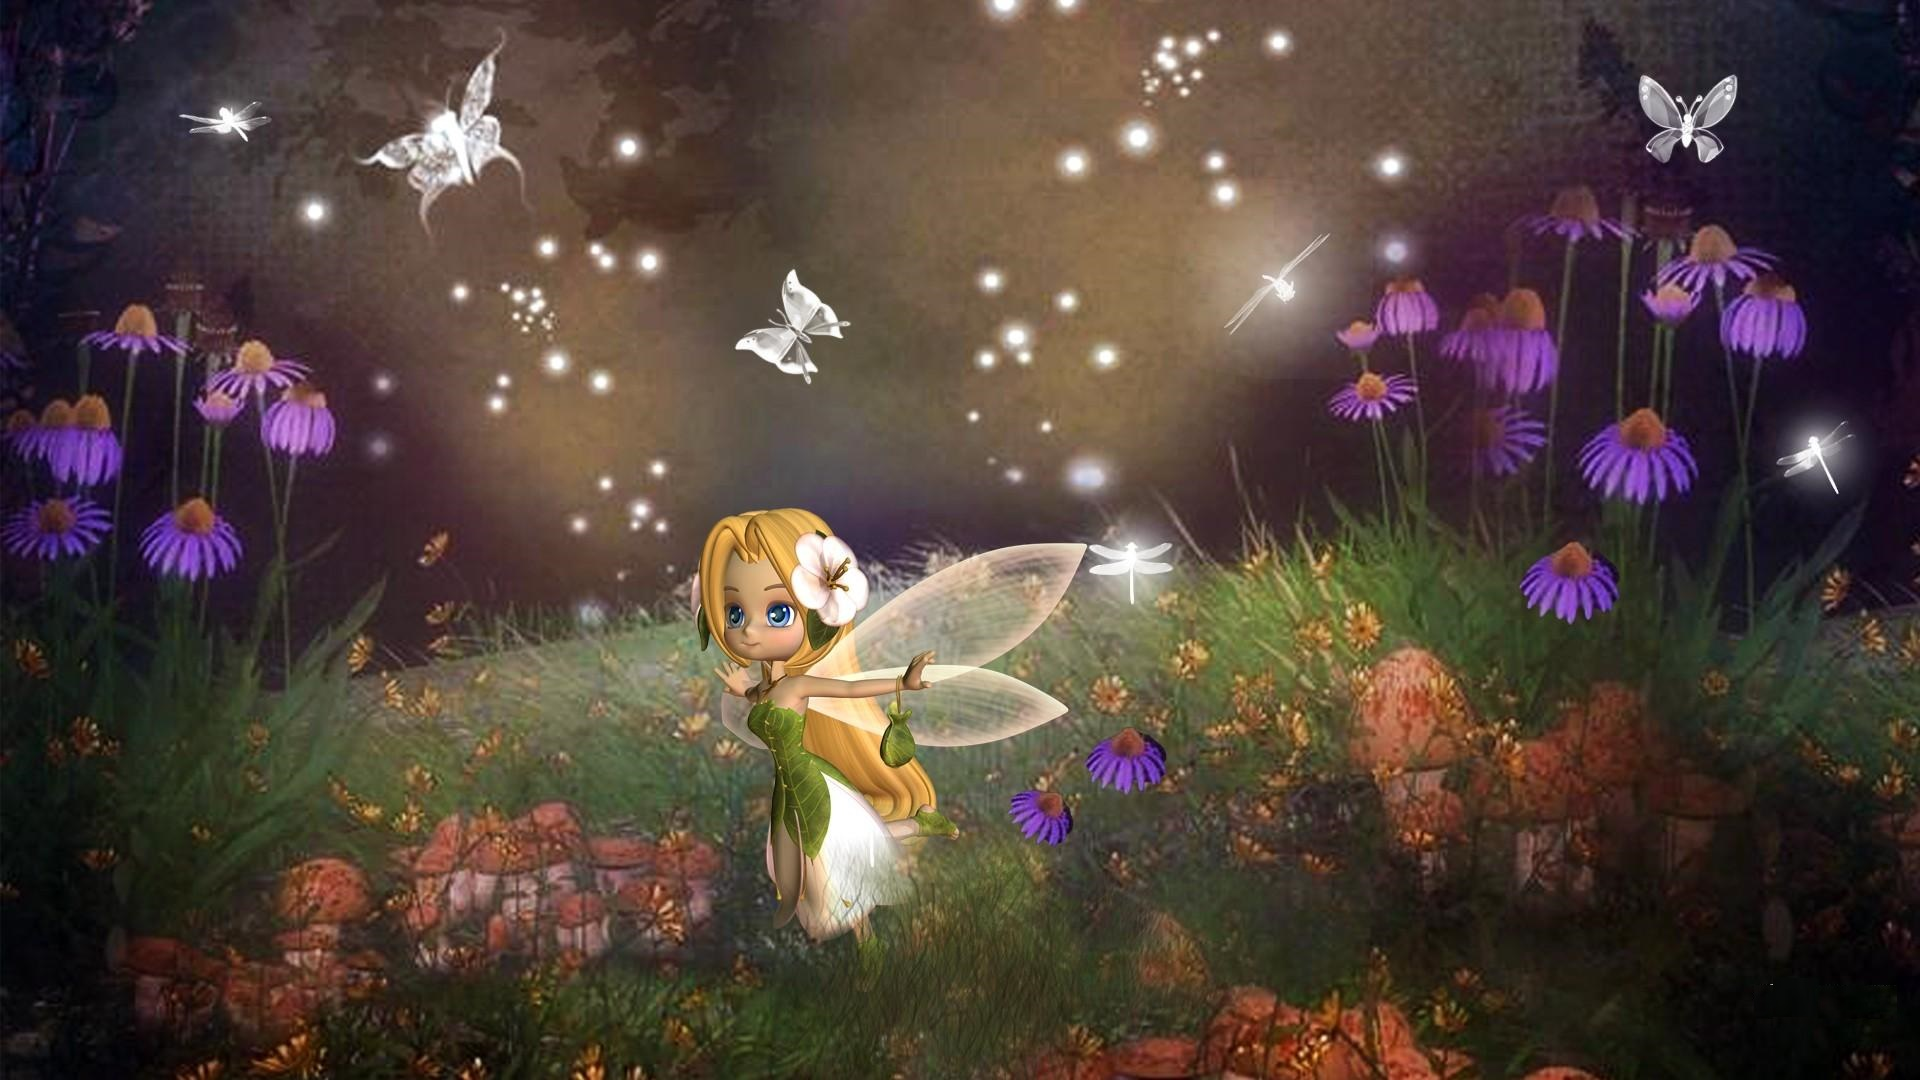 Fairy Wallpapers HD 1920x1080